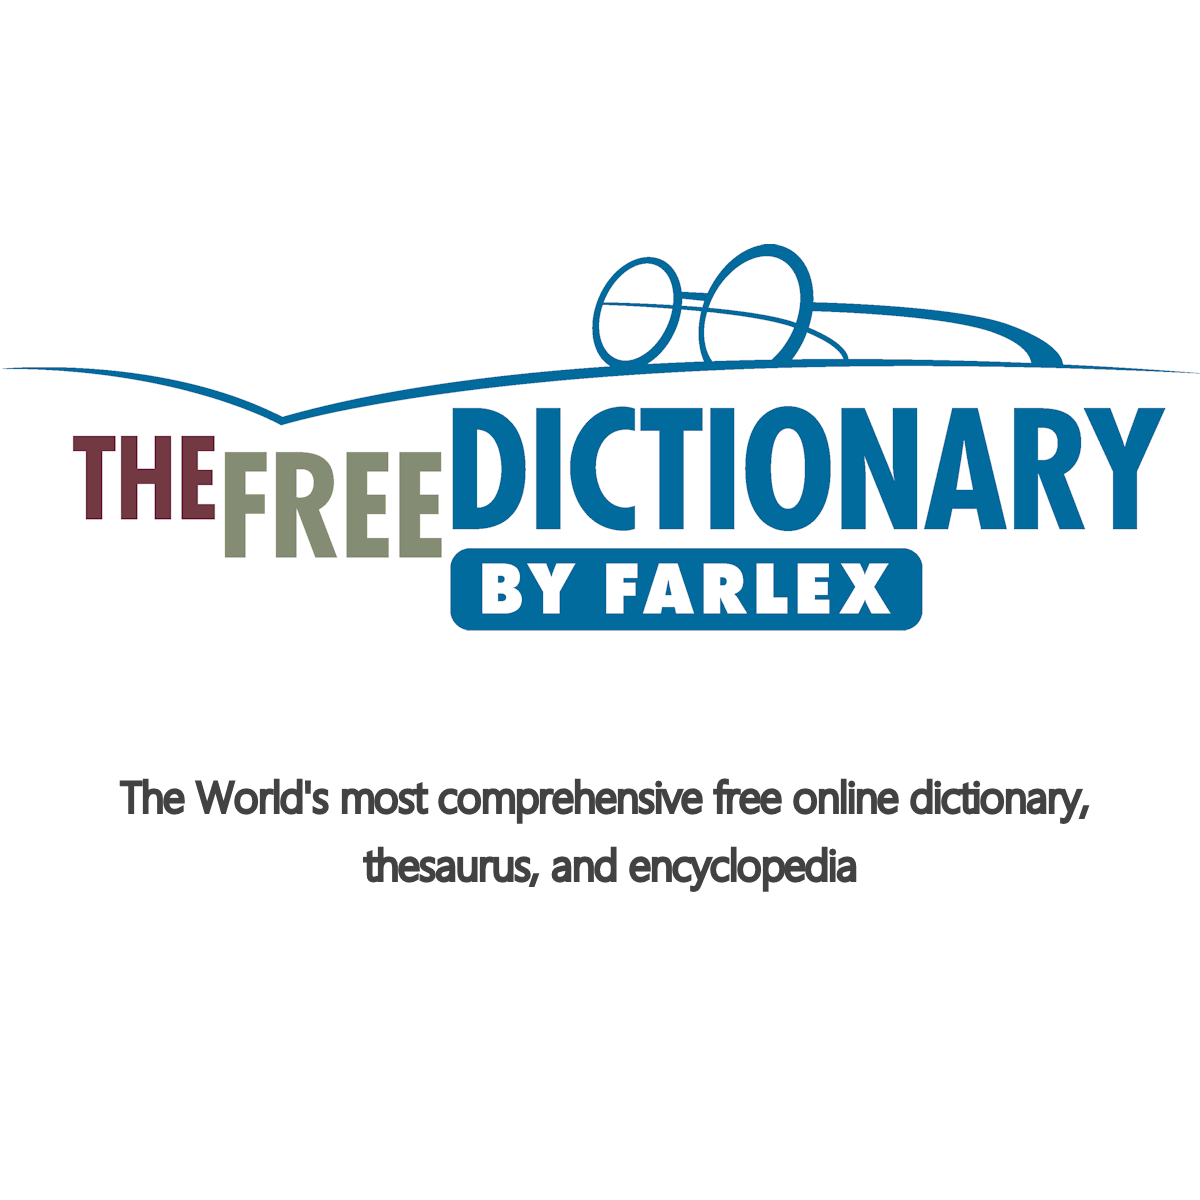 legal-dictionary.thefreedictionary.com